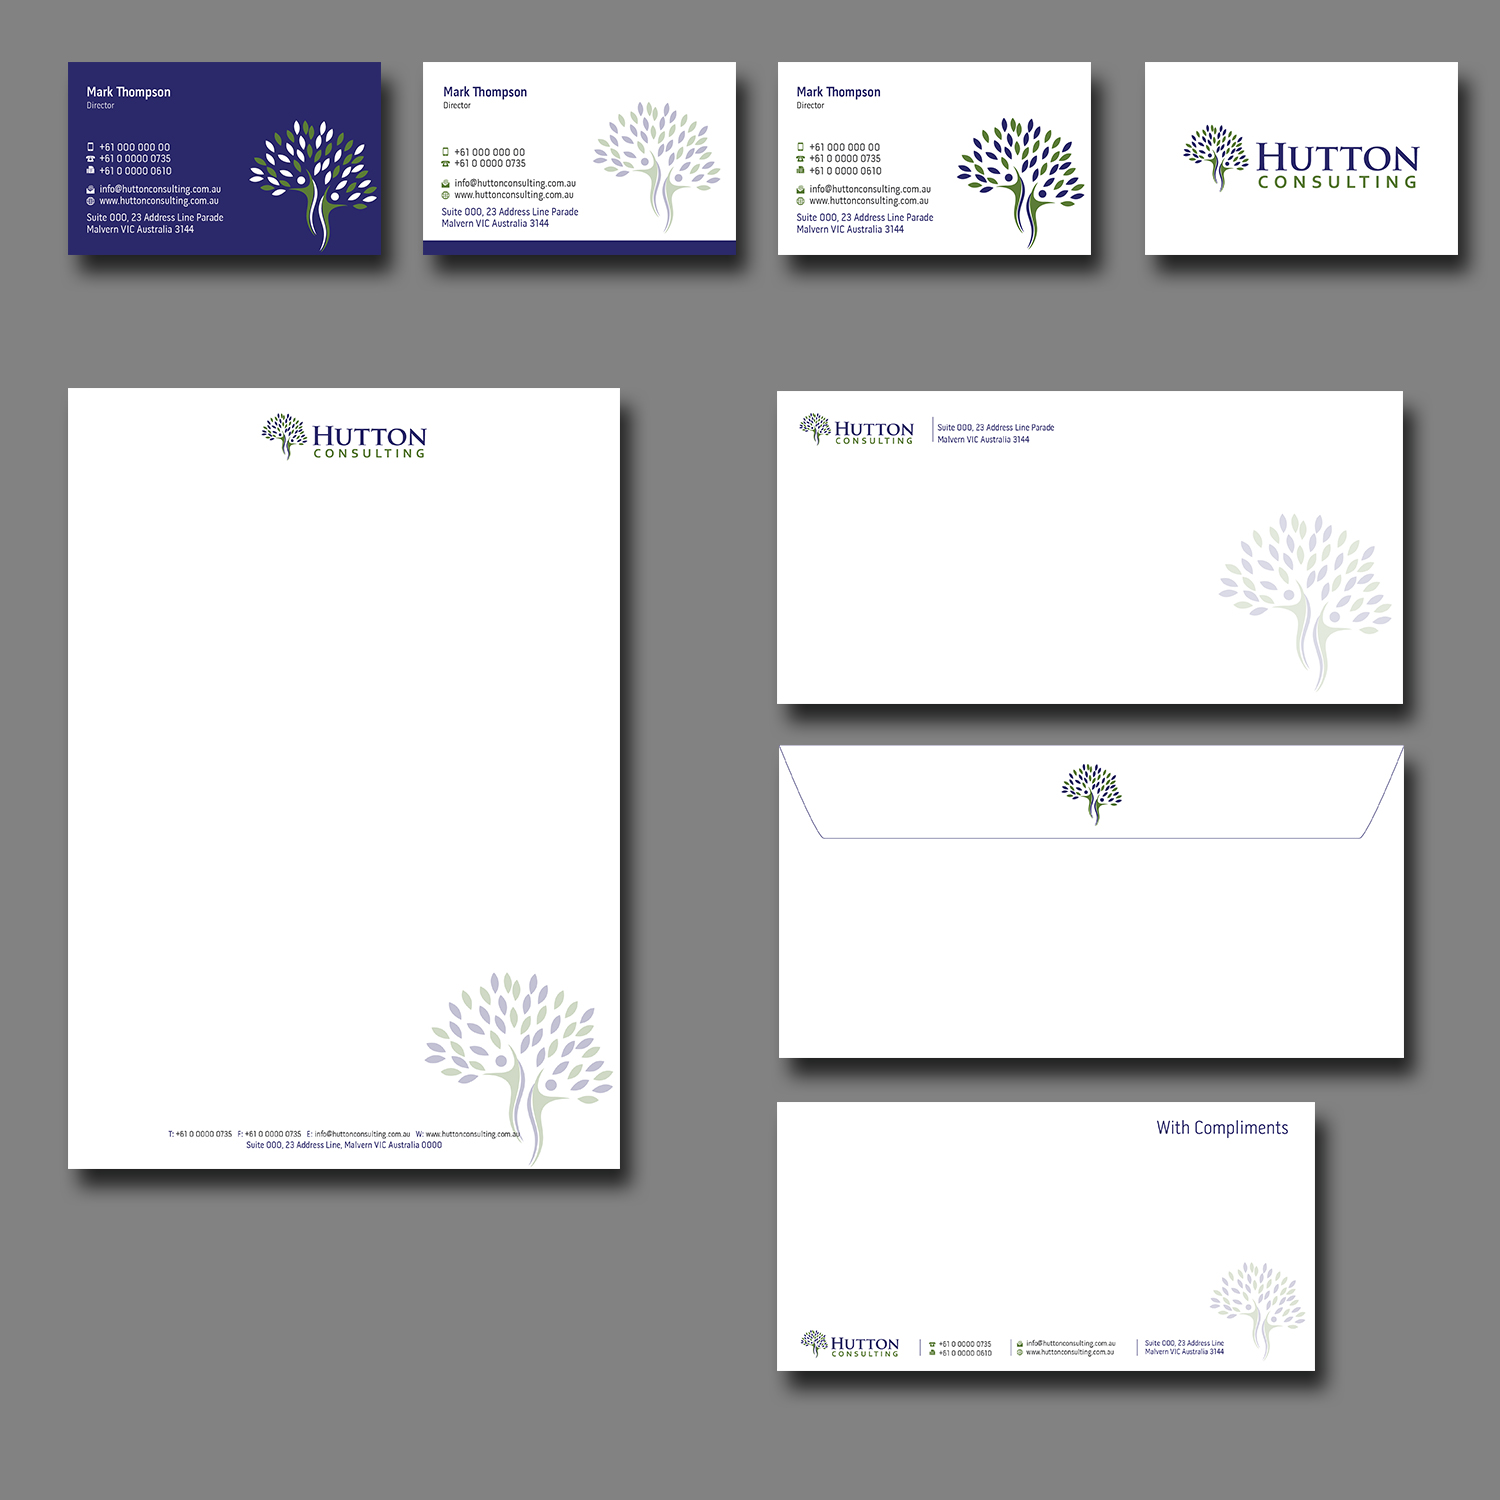 upmarket professional business stationery design for a company by